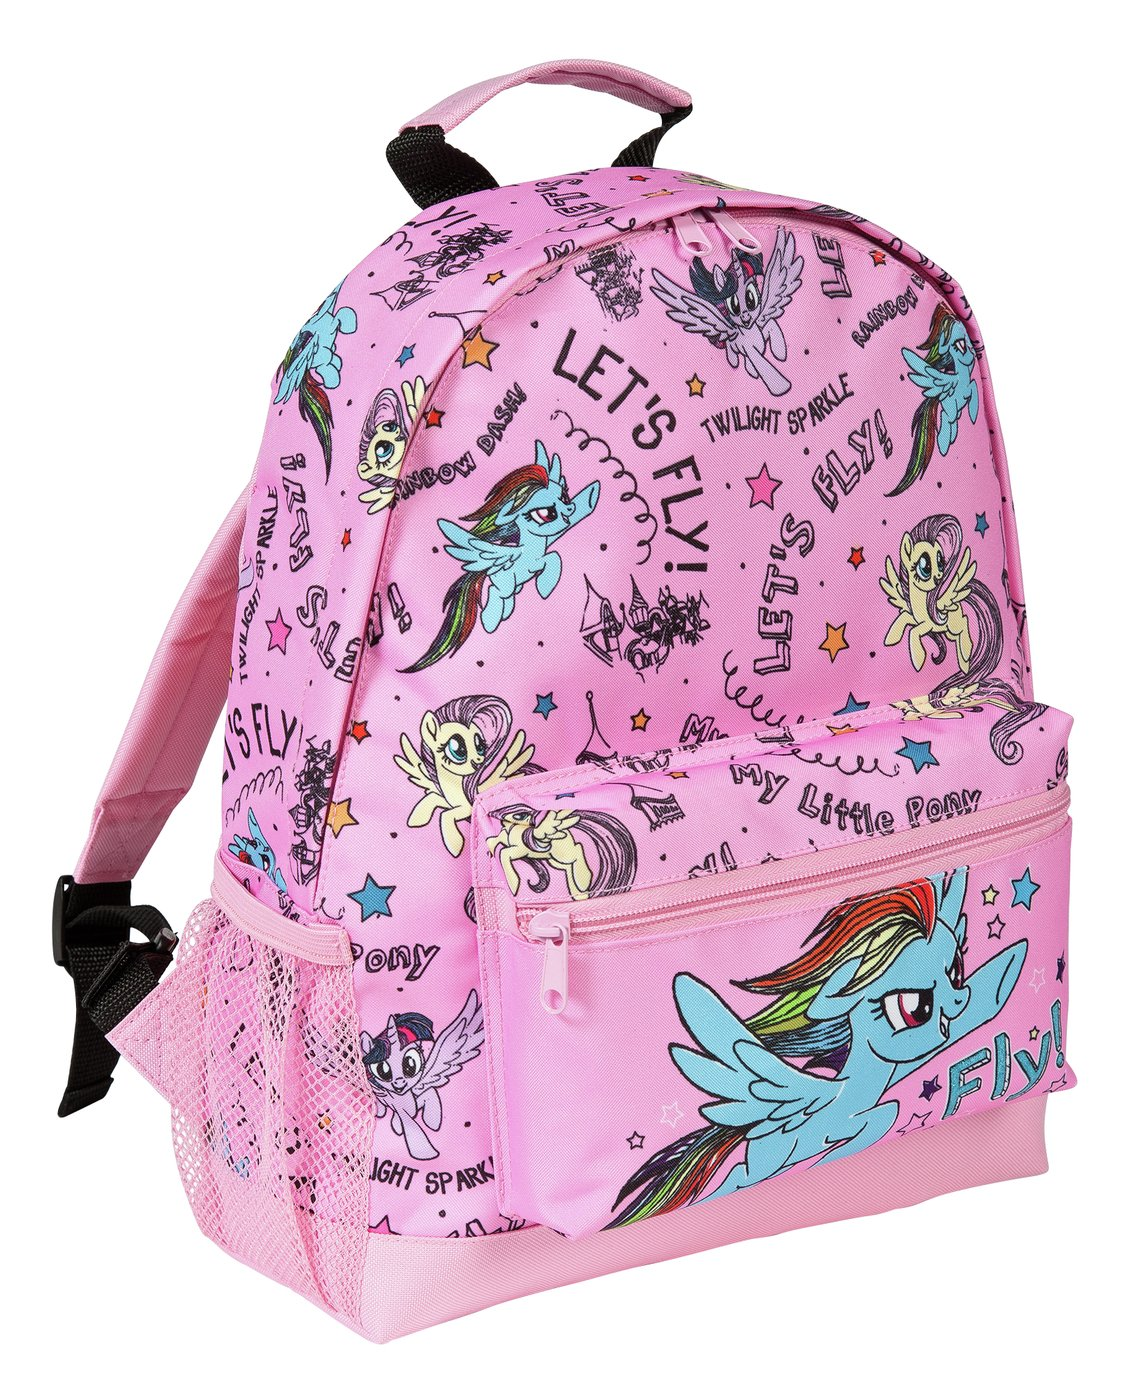 My Little Pony Backpack - Pink from Hasbro